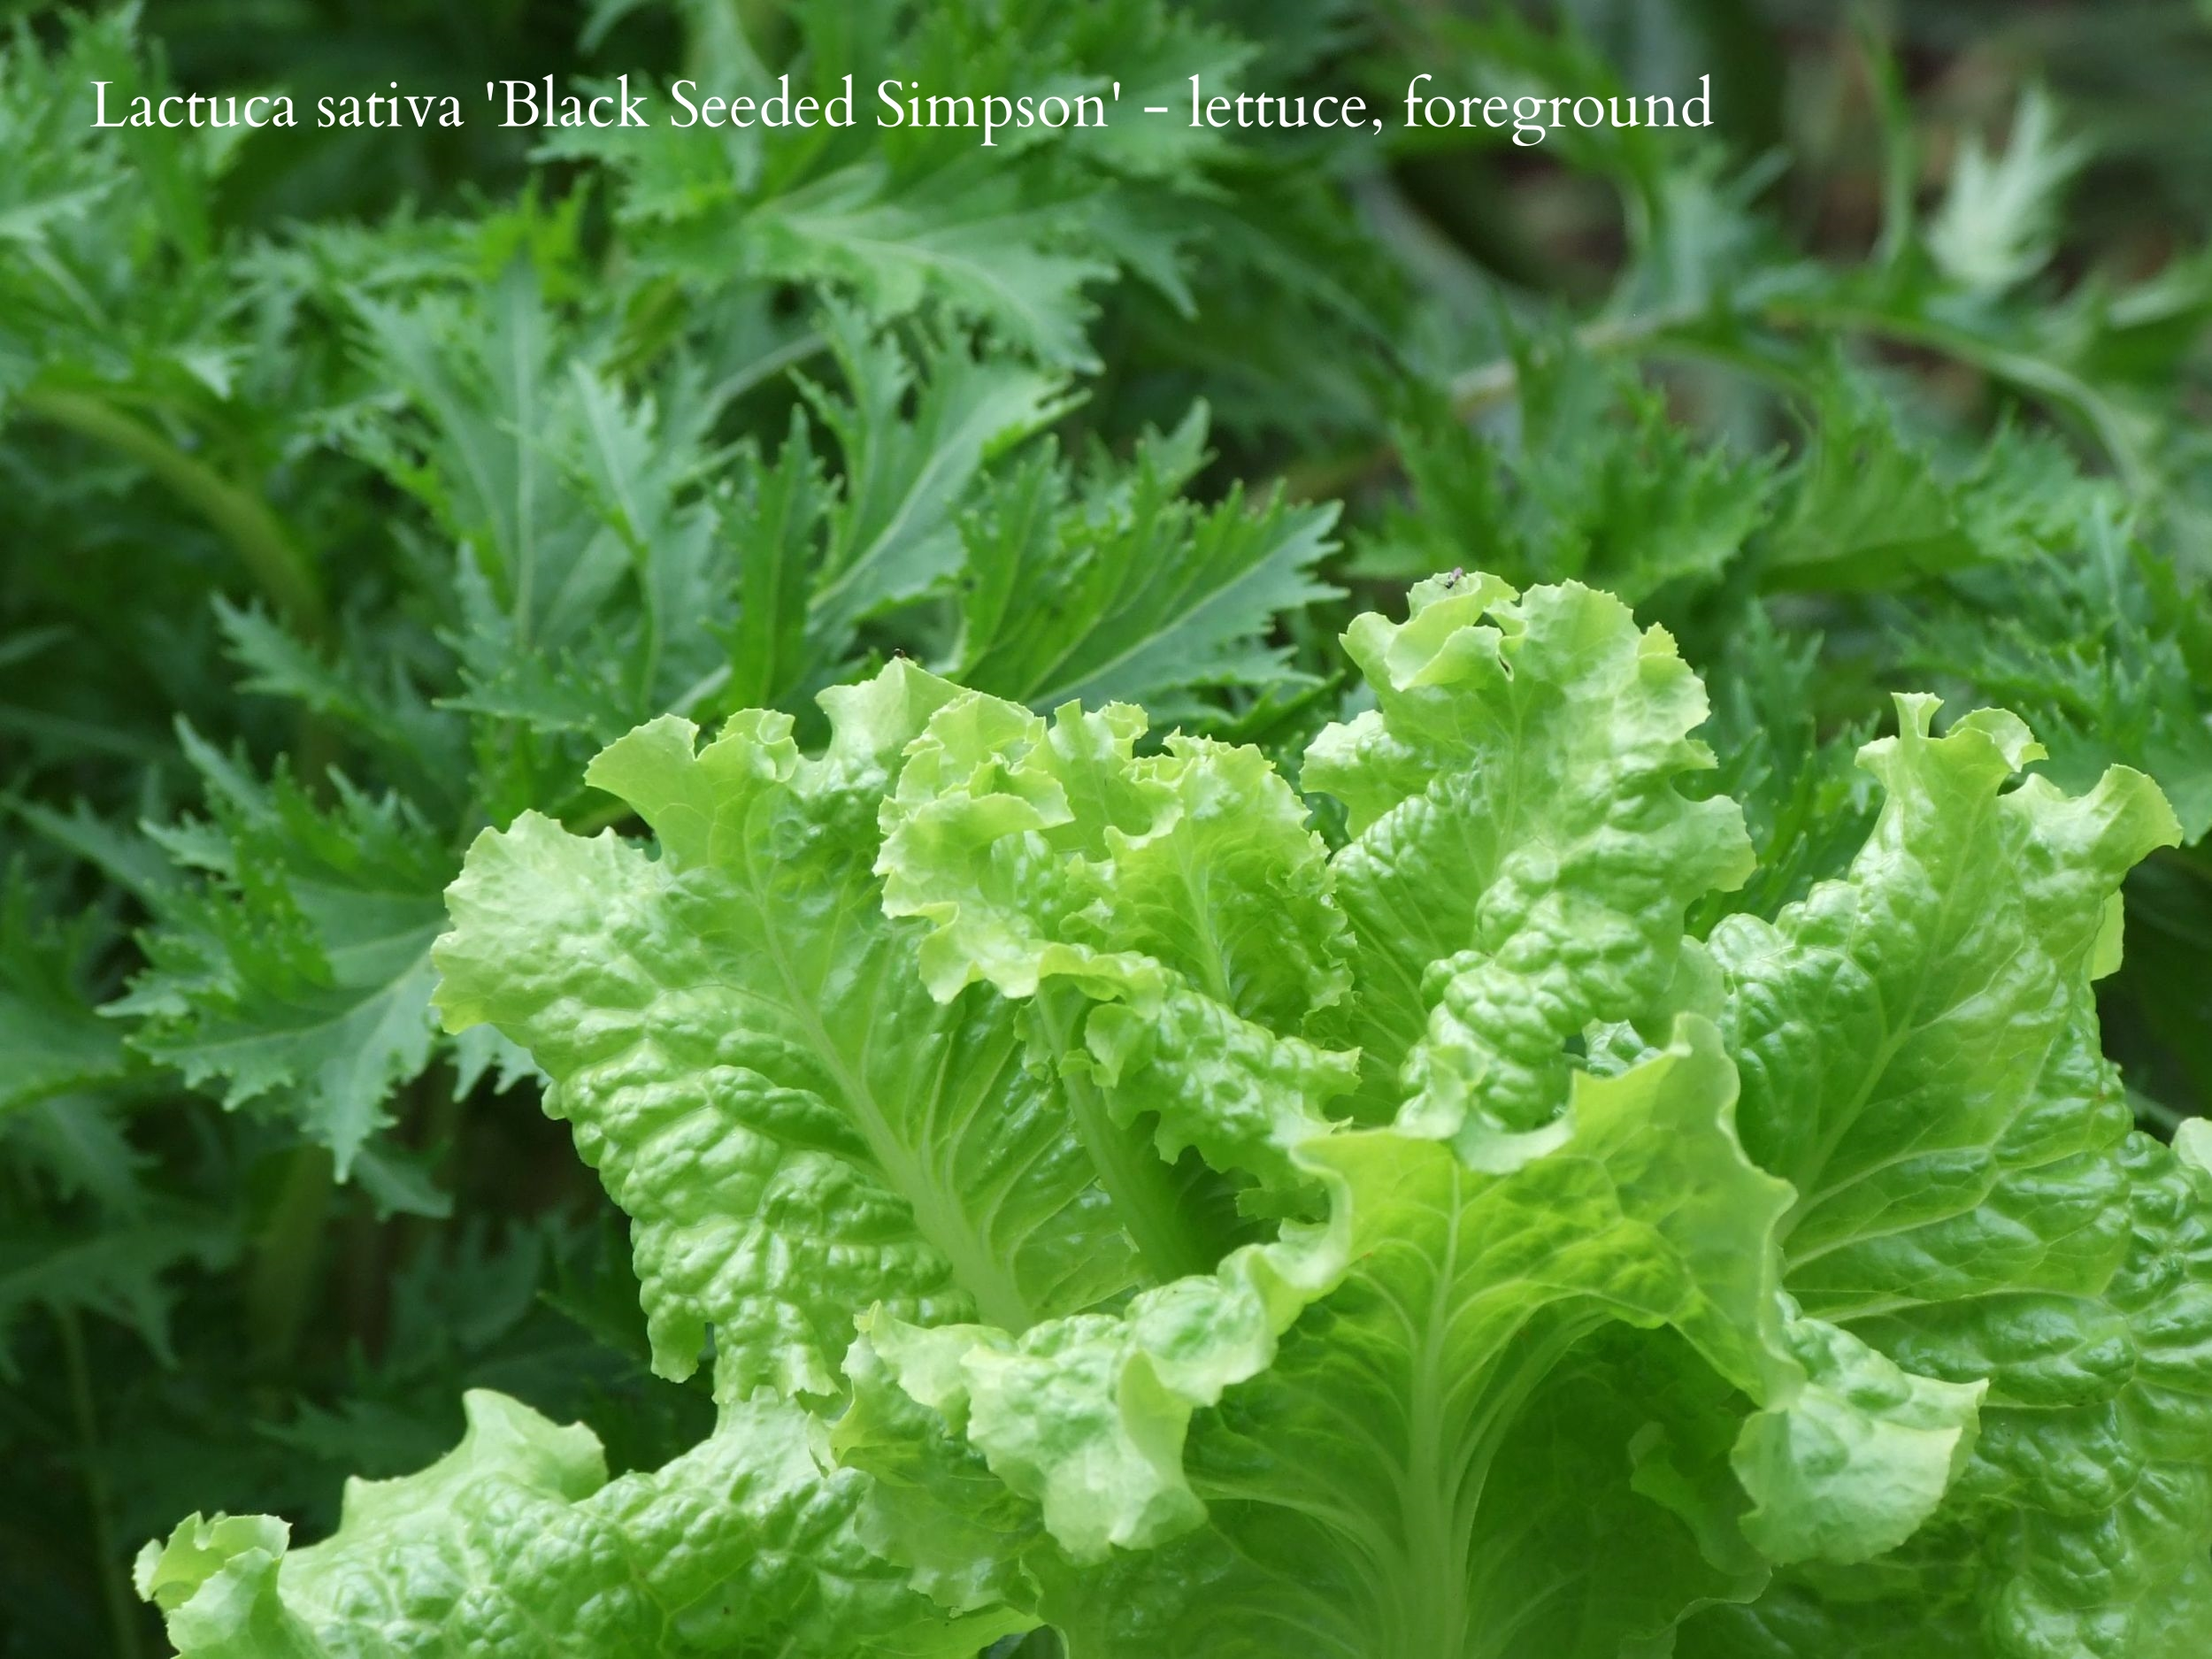 lettuce and chicory 20090610.JPG